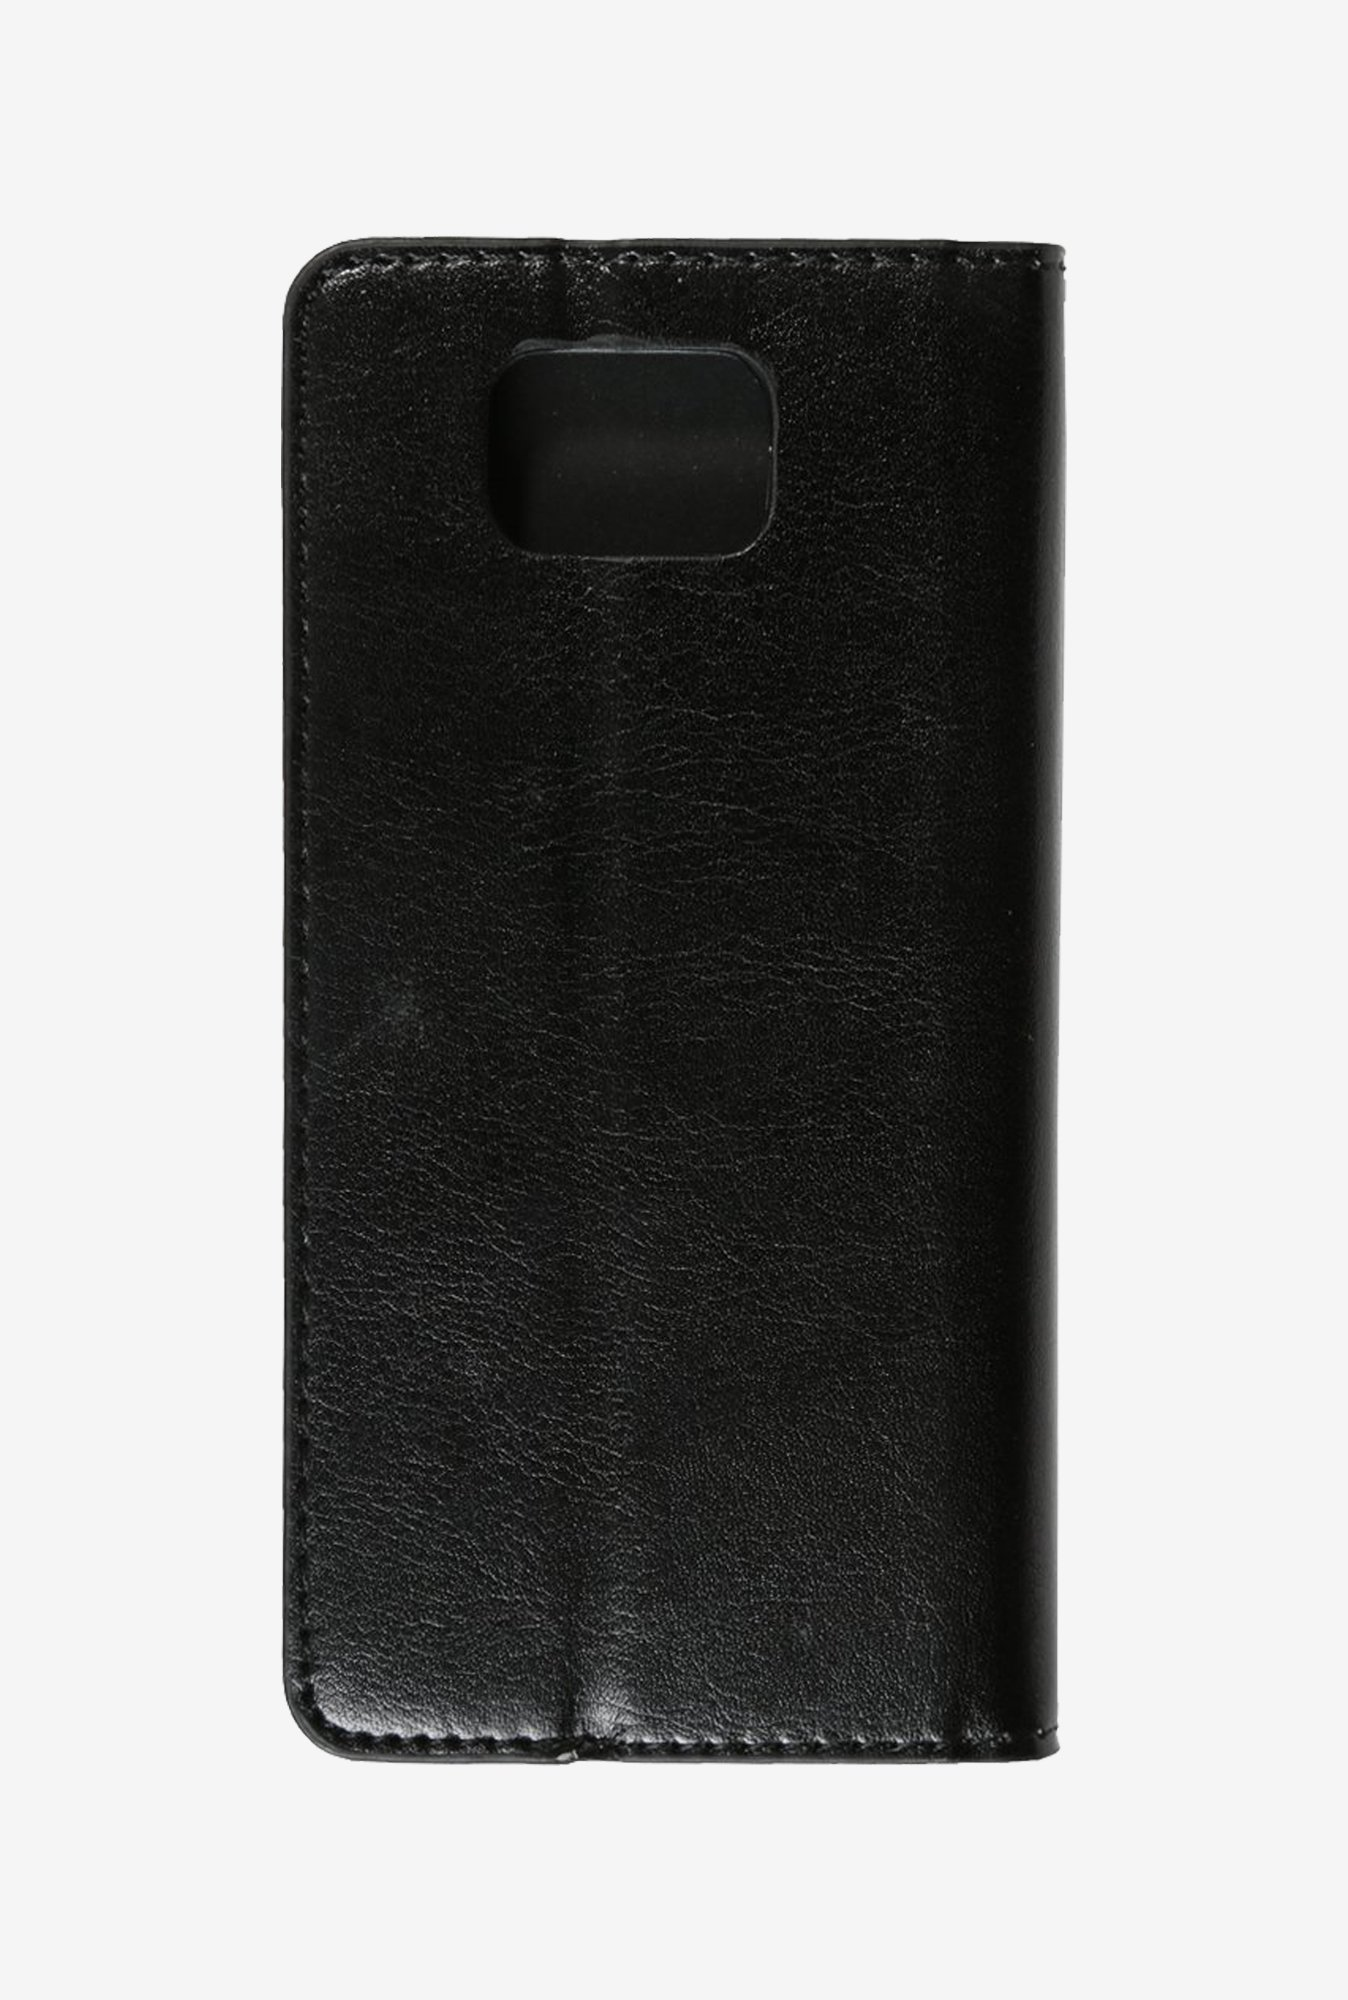 iAccy SS9067 Wallet Case Black for Samsung Galaxy Alpha